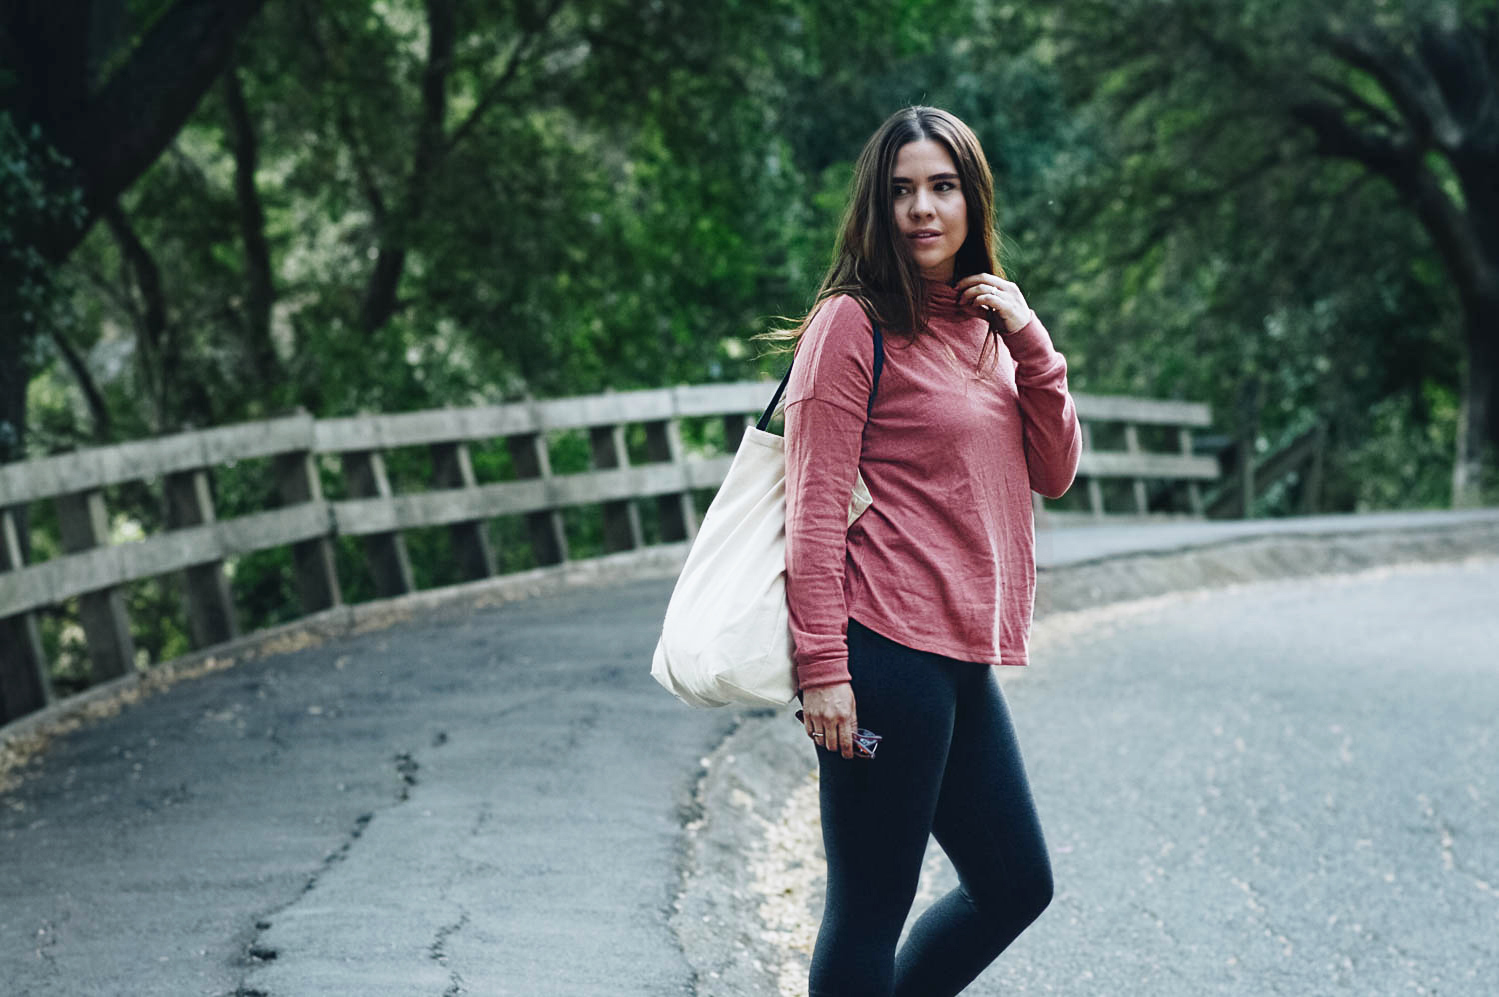 Sweater & Yoga Tights C/O prAna (15% off with code: MS15KT)